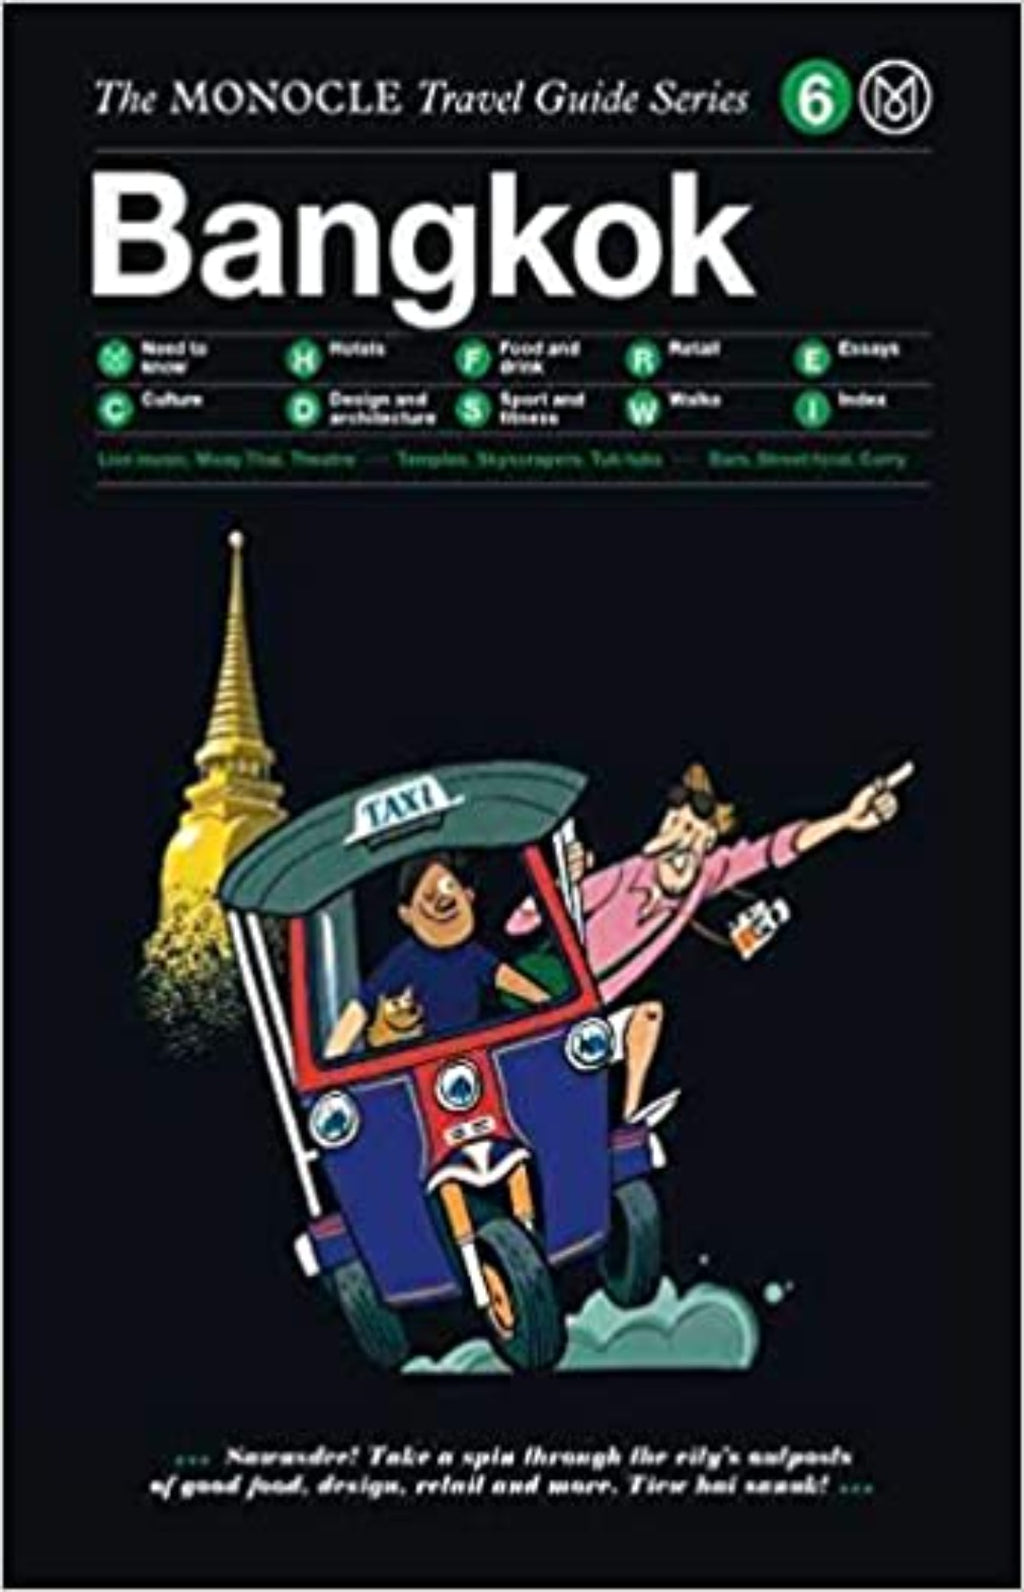 Bangkok - The Monocle Travel Guide Series 6